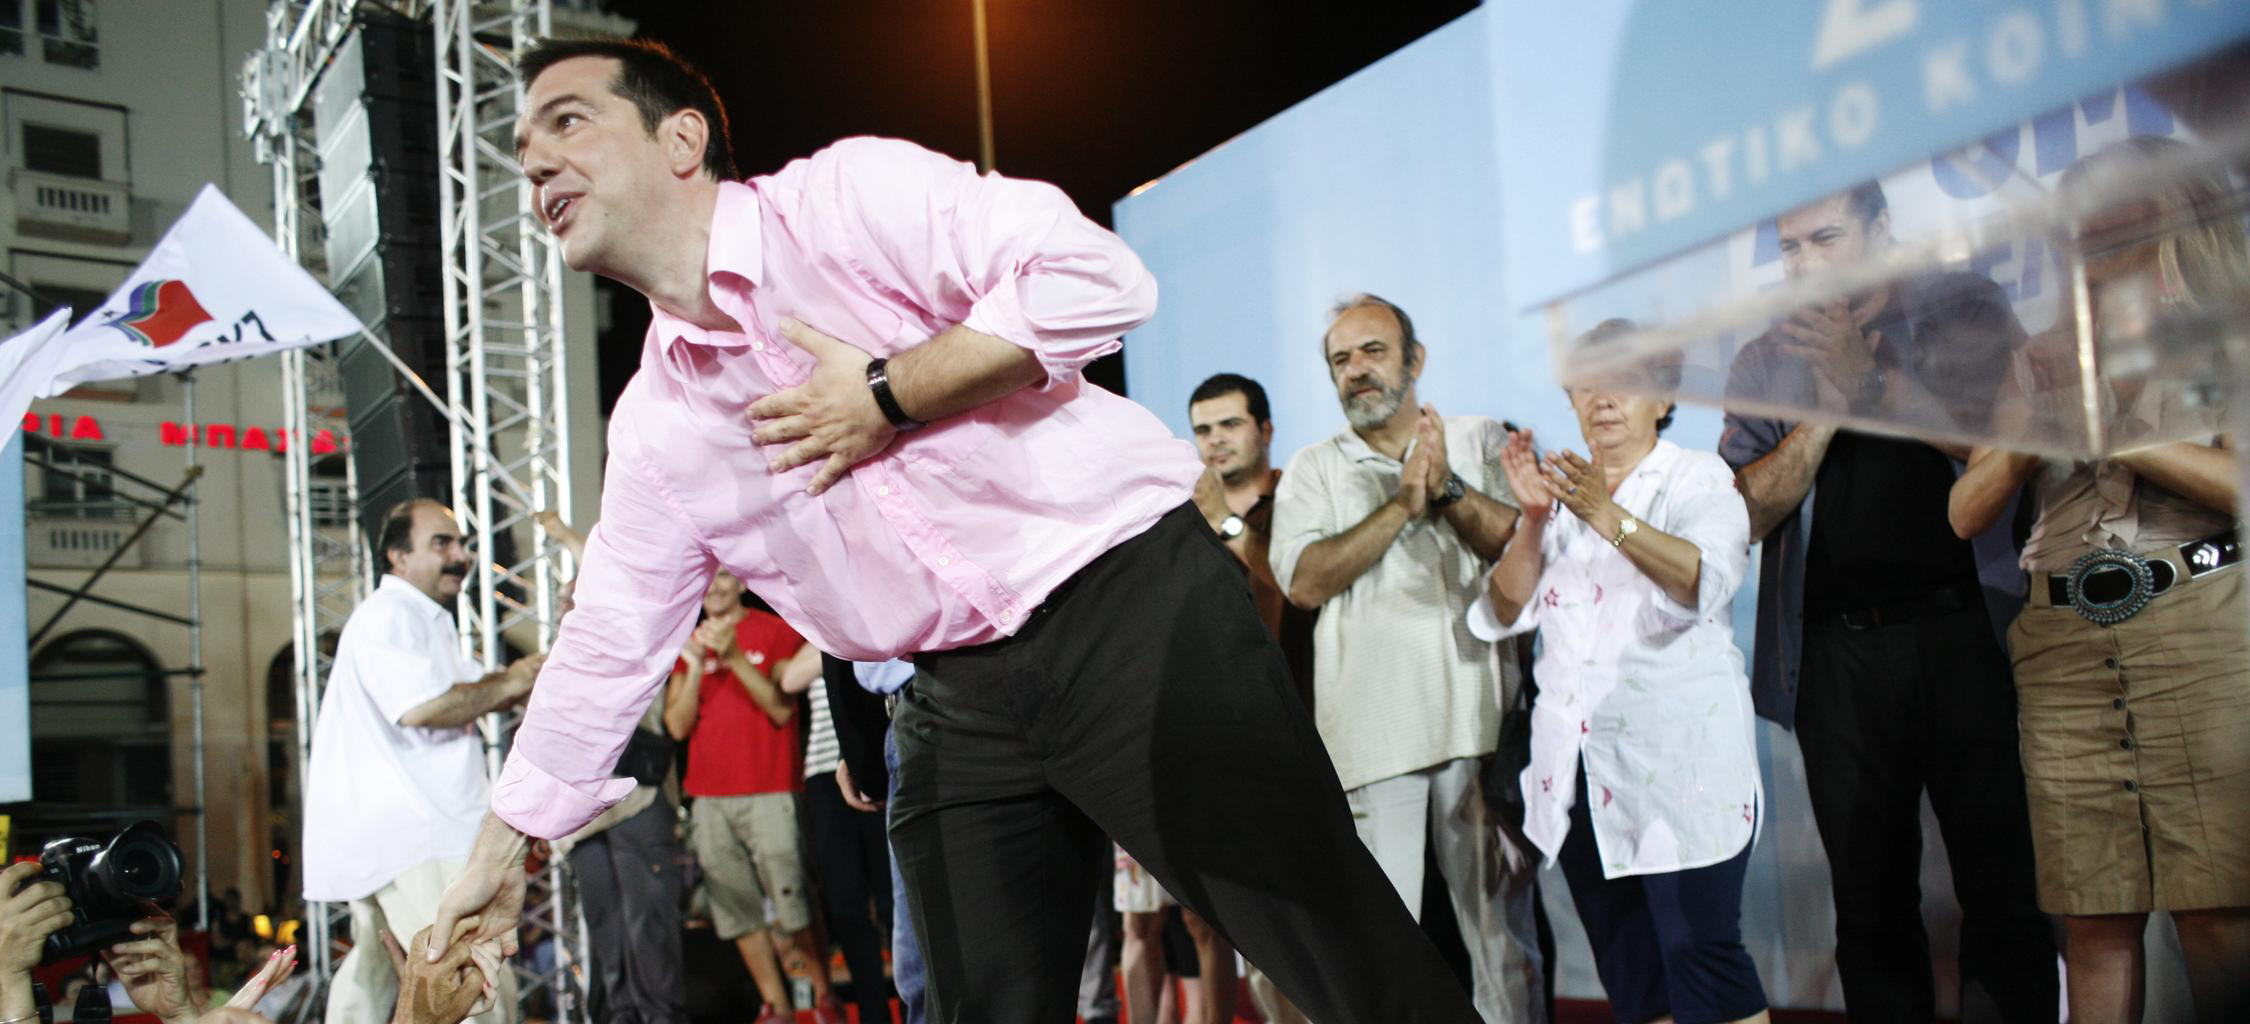 Coalition of the Radical Left, Syriza, leader Alexis Tsipras addresses supporters during pre-election rally in Thessaloniki. / Ομιλία του Αλέξη Τσίπρα σε προεκλογική συγκέντρωση του ΣΥΡΙΖΑ στην Θεσσαλονίκη.